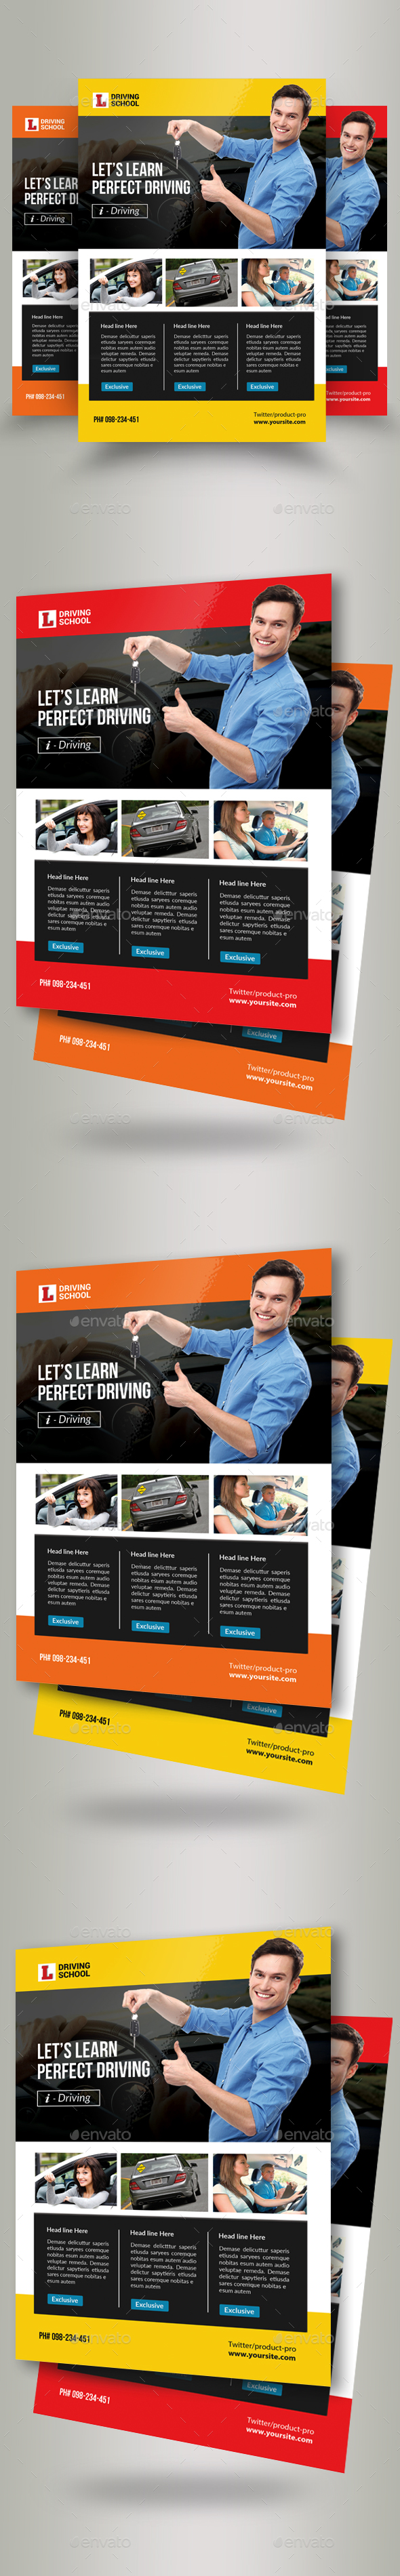 Driving School Flyer Template - Corporate Flyers